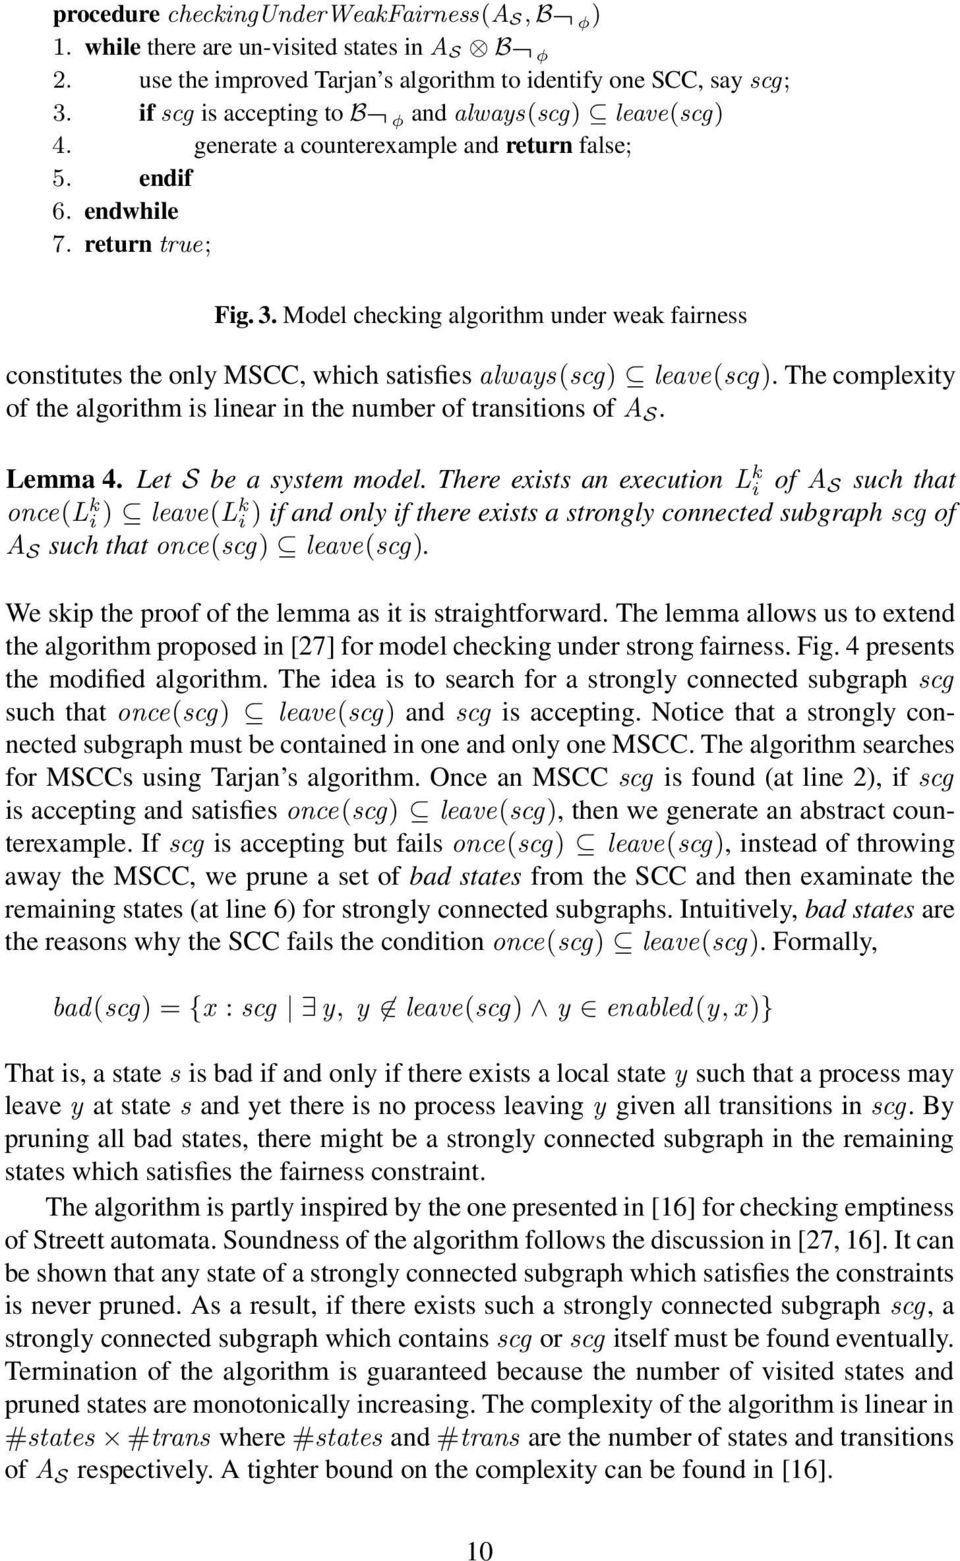 Model checking algorithm under weak fairness constitutes the only MSCC, which satisfies always(scg) leave(scg). The complexity of the algorithm is linear in the number of transitions of A S. Lemma 4.